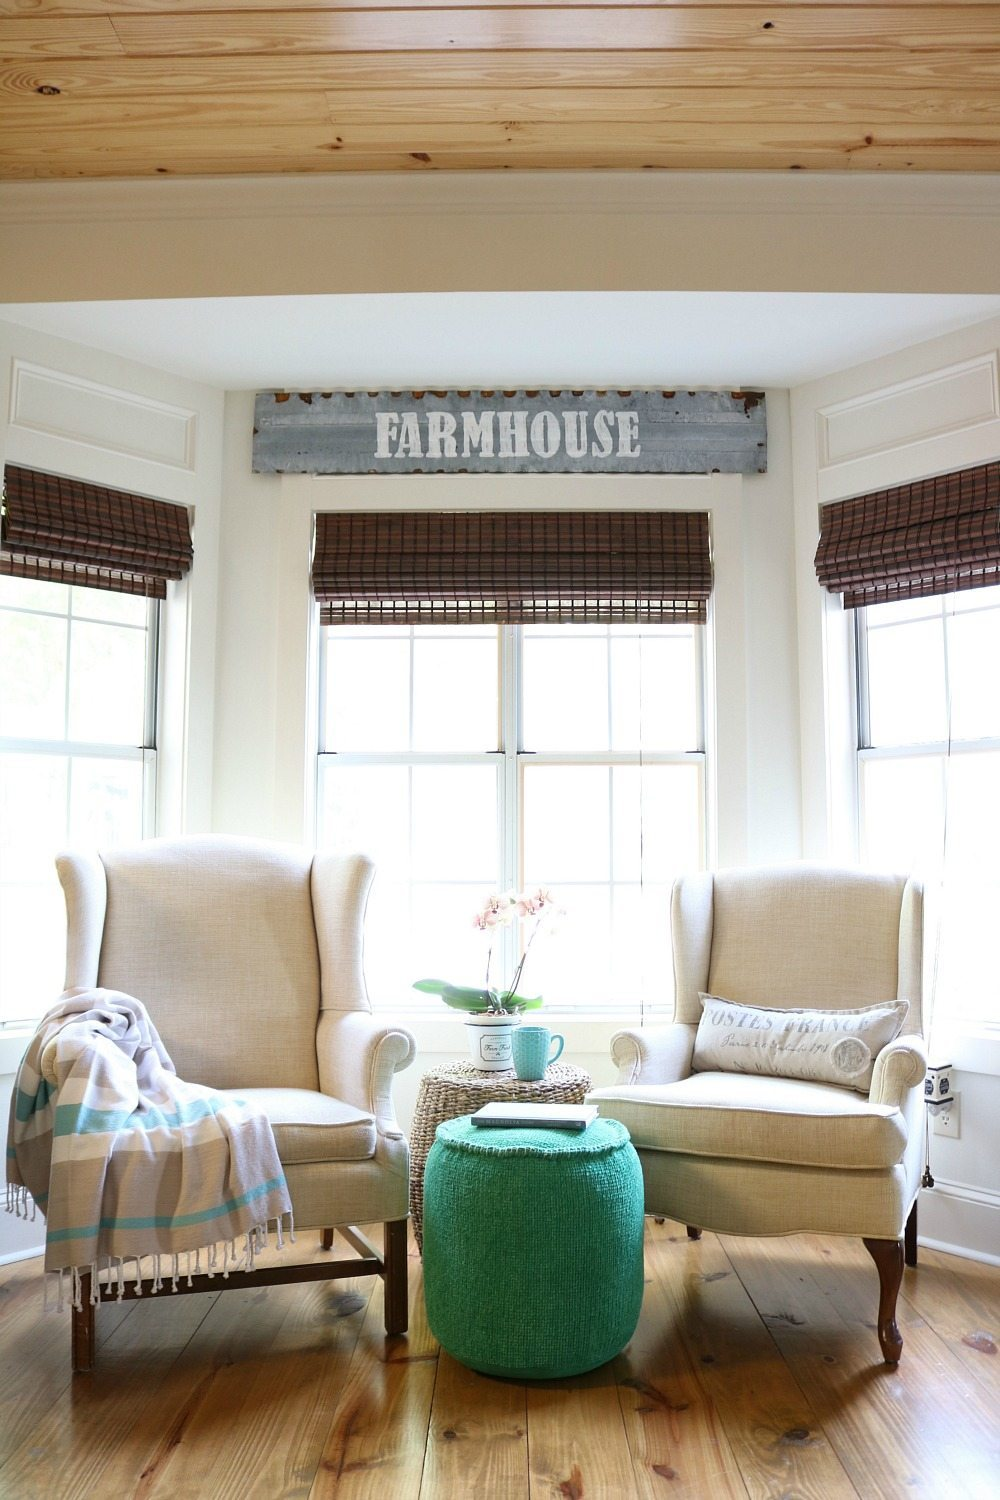 Cozy-corner-in-the-kitchen-perfect-for-this-metal-farmhouse-sign